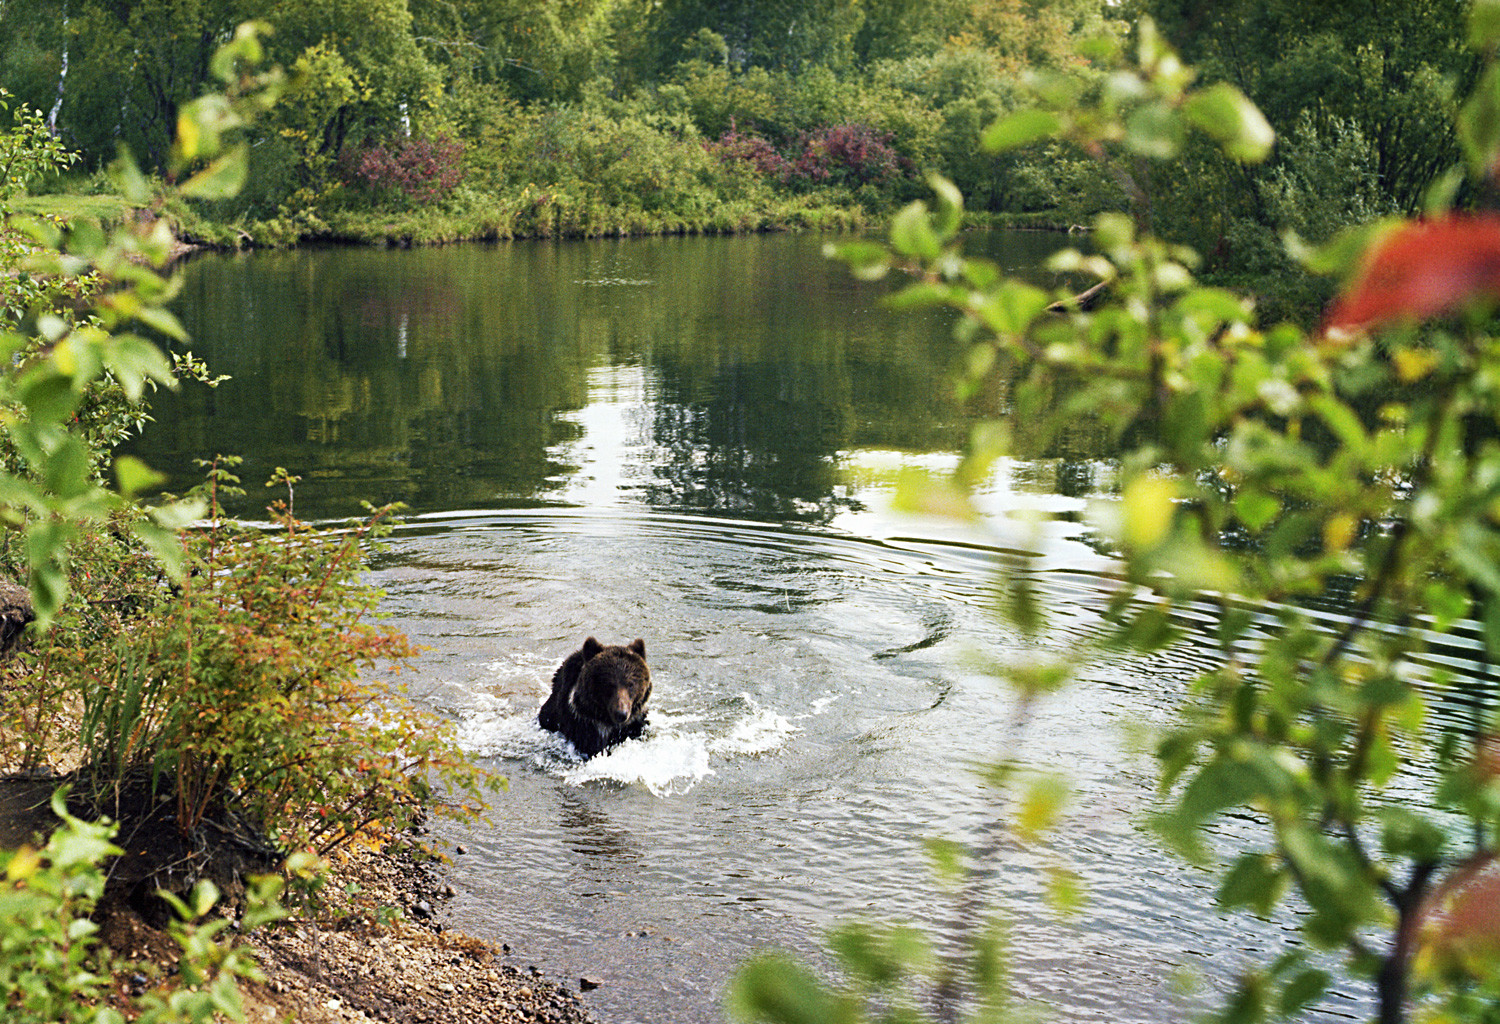 Bears can be observed safely from a boat, which many tour operators offer.